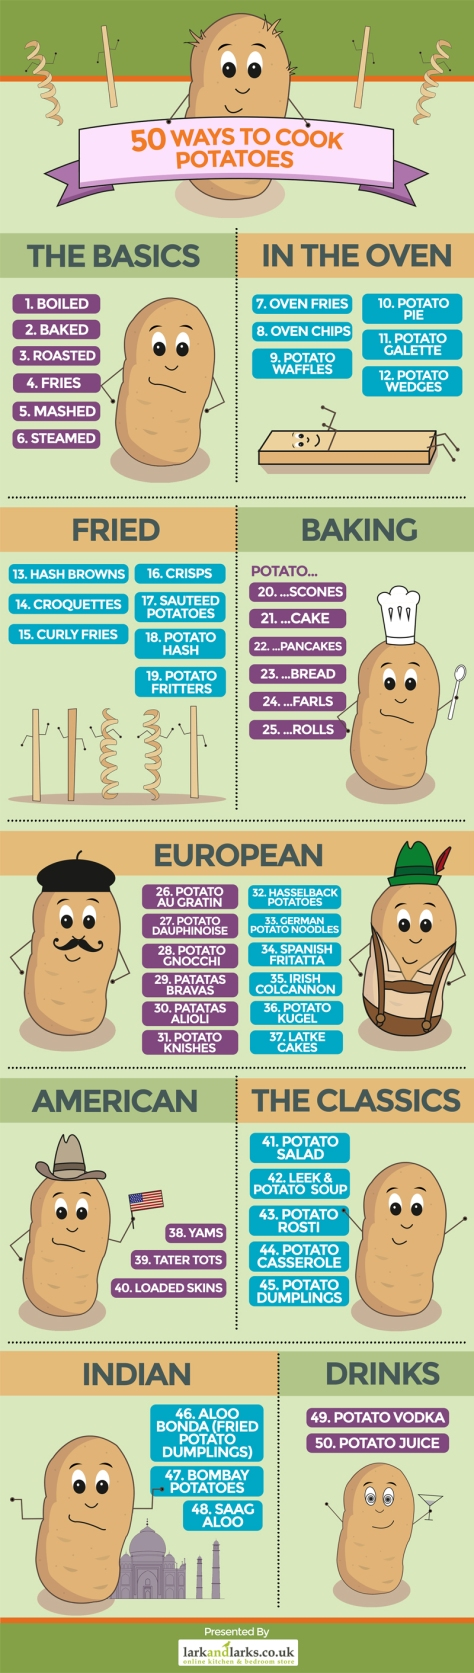 50 Ways to Cook Potatoes